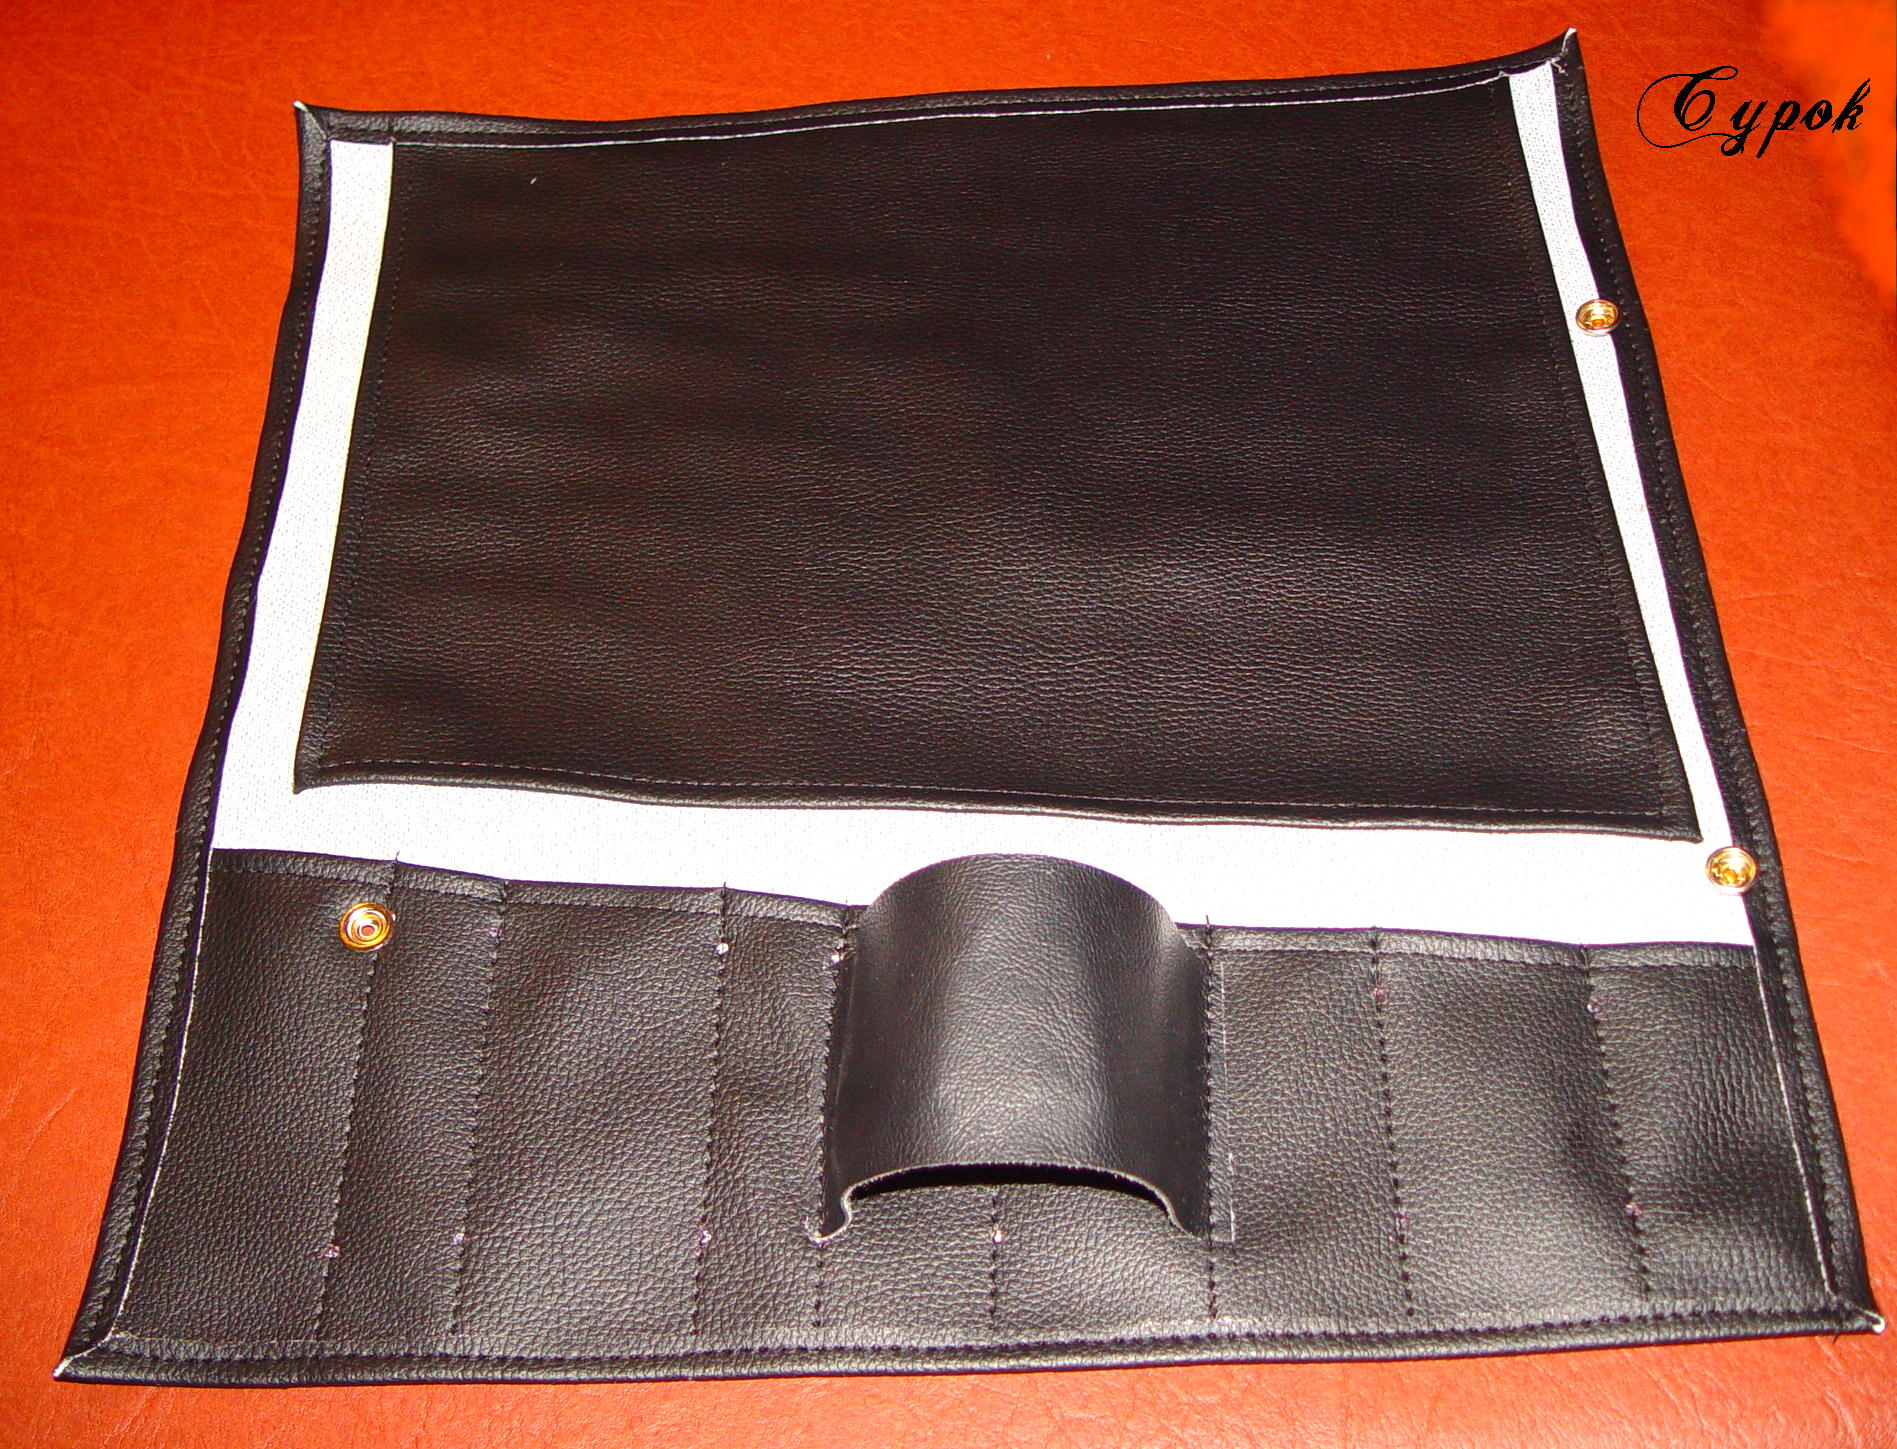 This listing is for ORIGINAL REPRODUCTION of Porsche 911 930 tool bag .